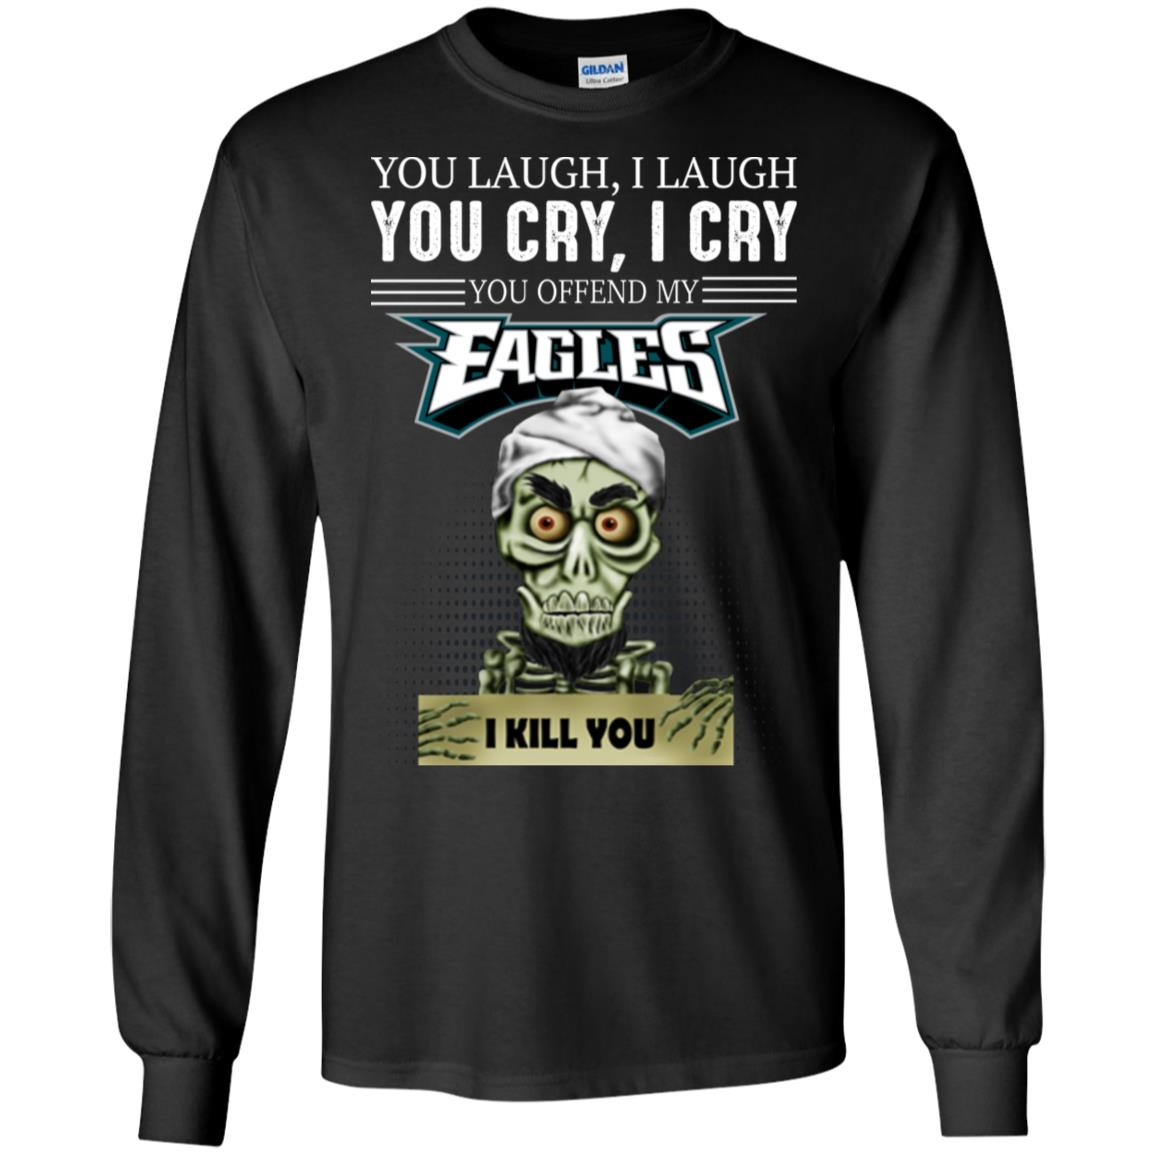 You Laugh I Laugh You Cry I Cry You offend my Eagles I kill you